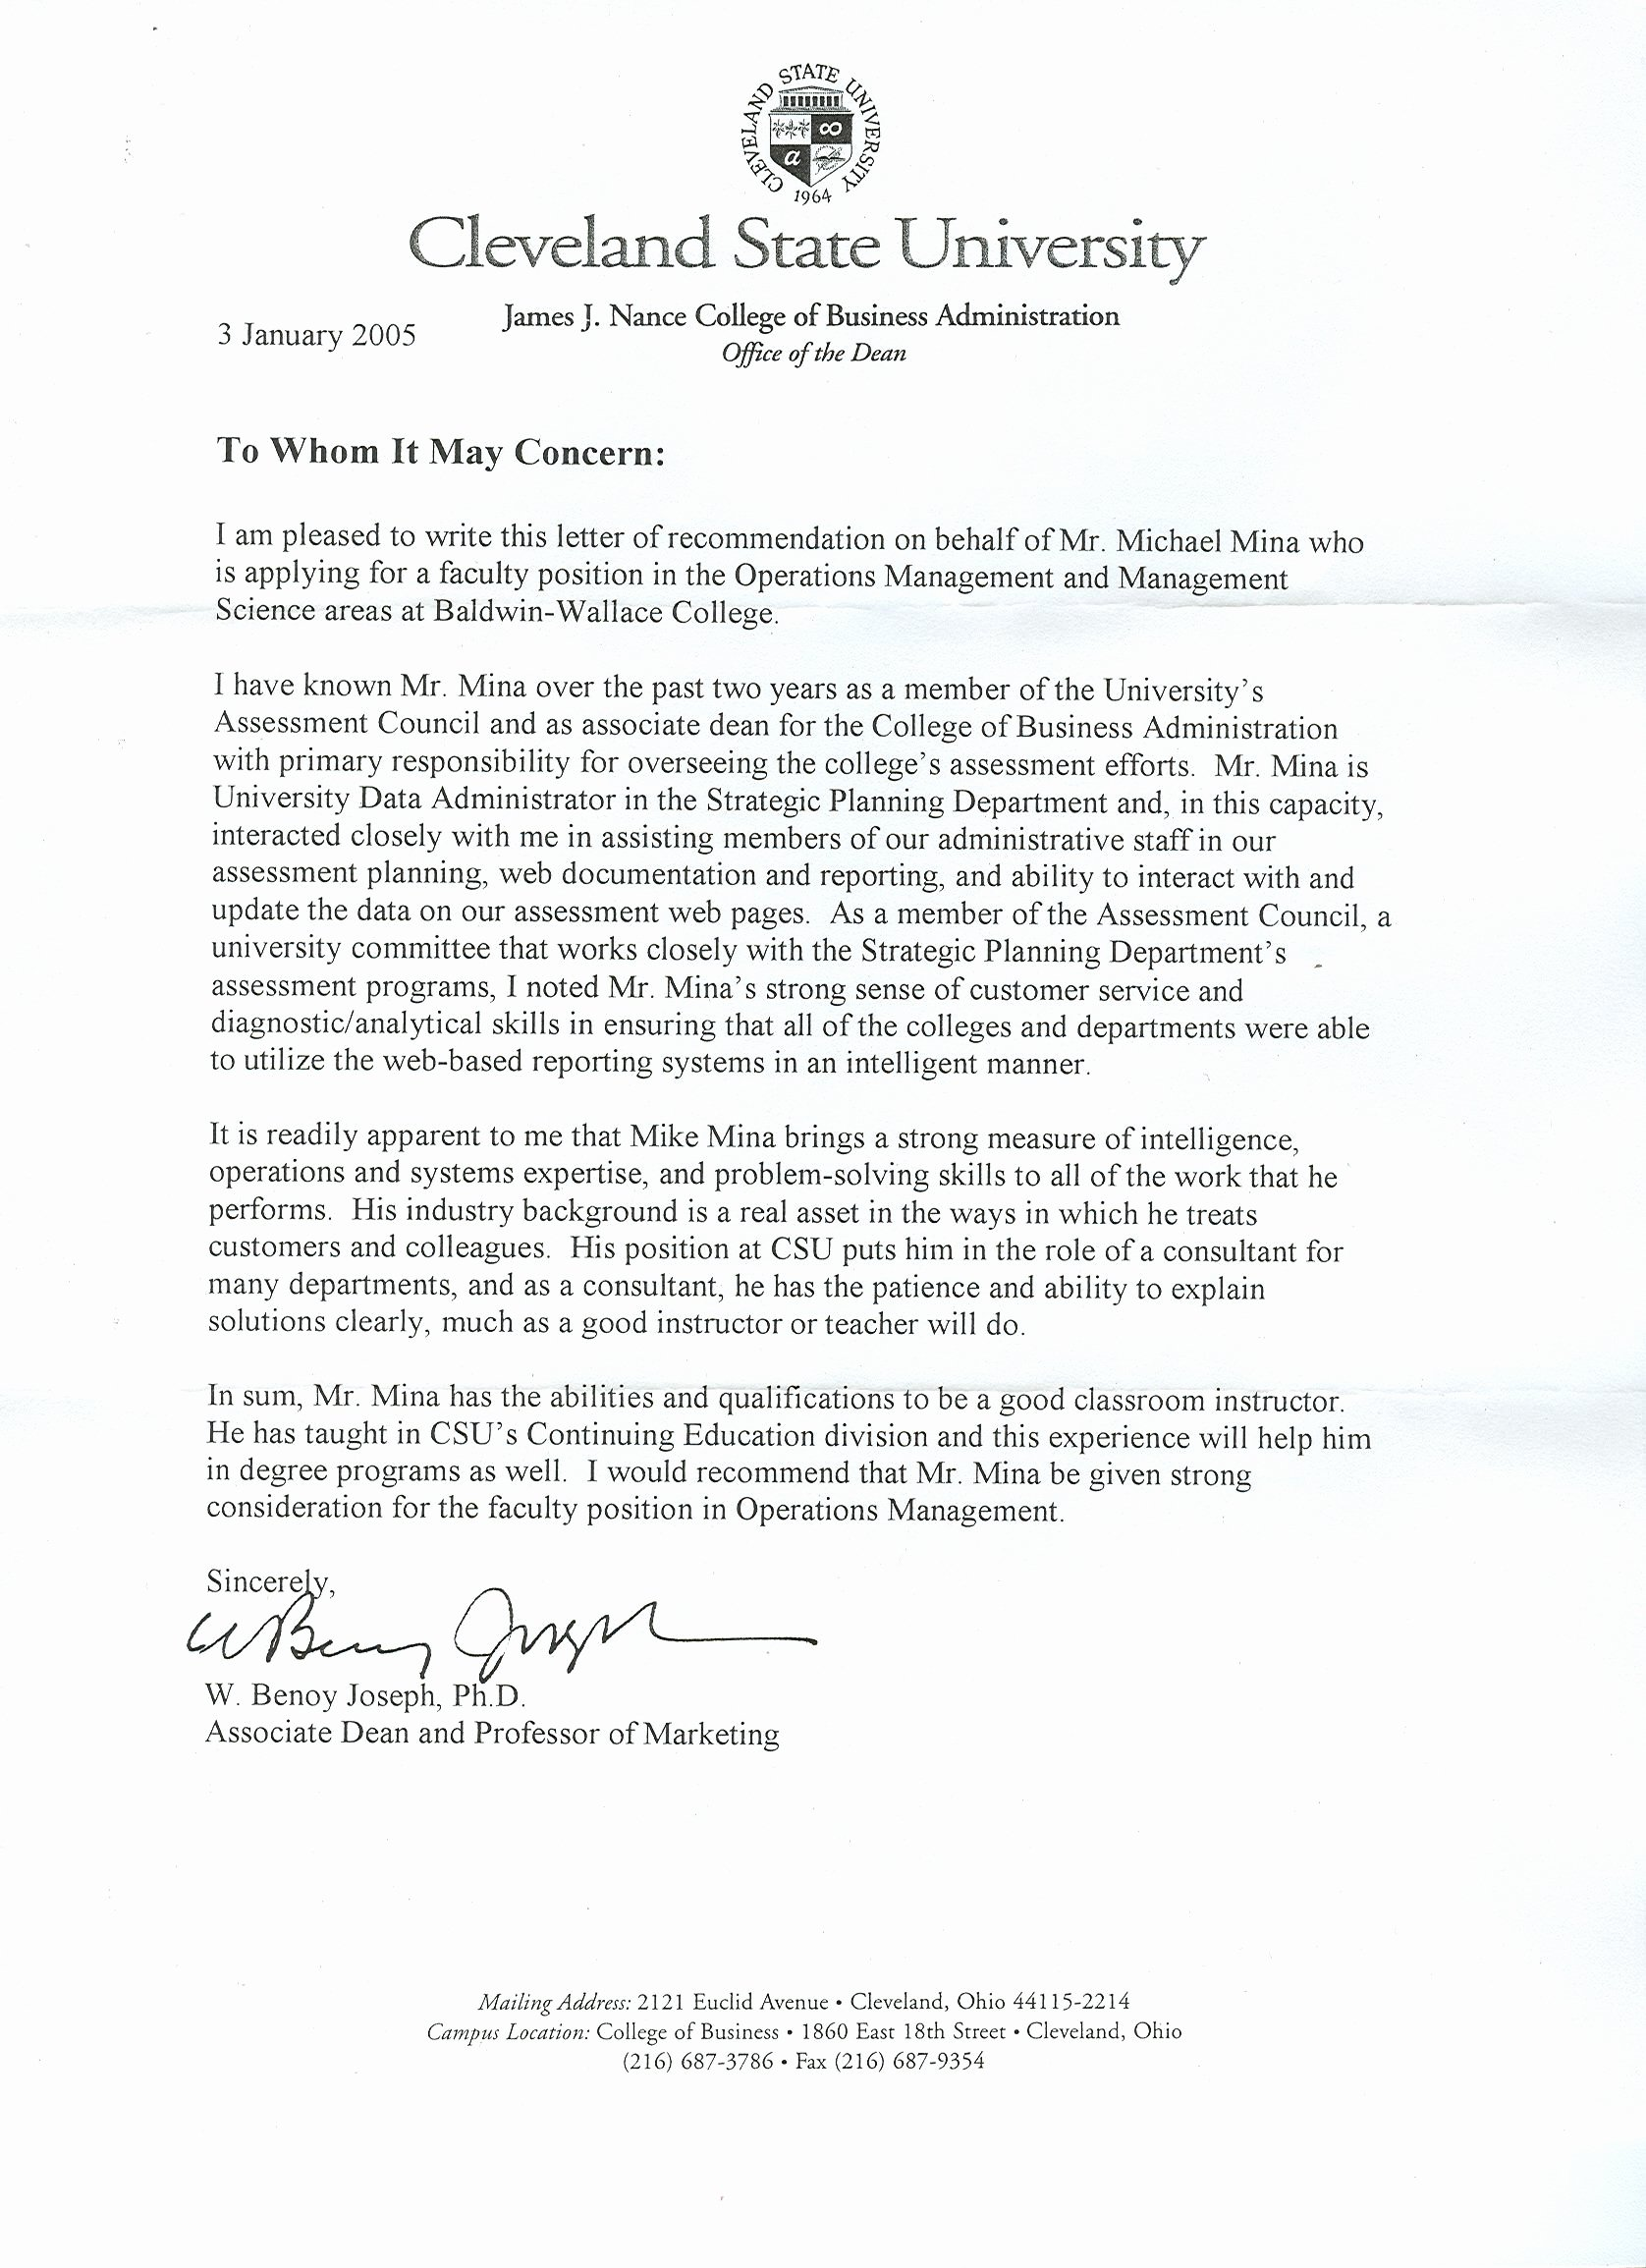 Buy Letter Of Recommendation Fresh where Can I Letter Of Re Mendation Paper